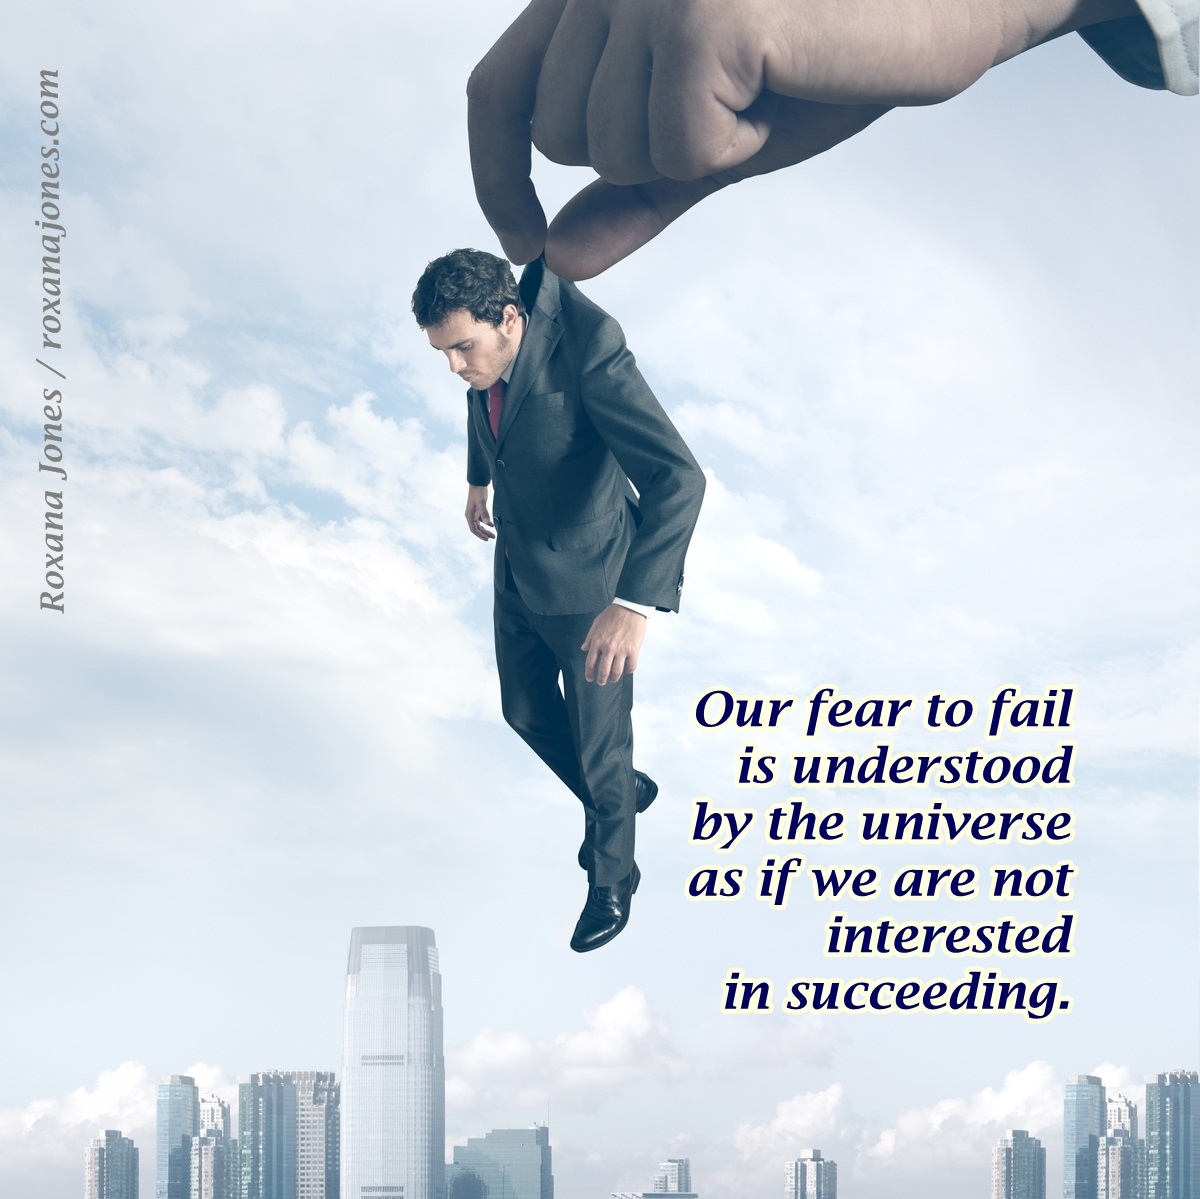 Good Clarity Quote ~ Our fear to fail is understood by the universe as if we are not interested in succeeding